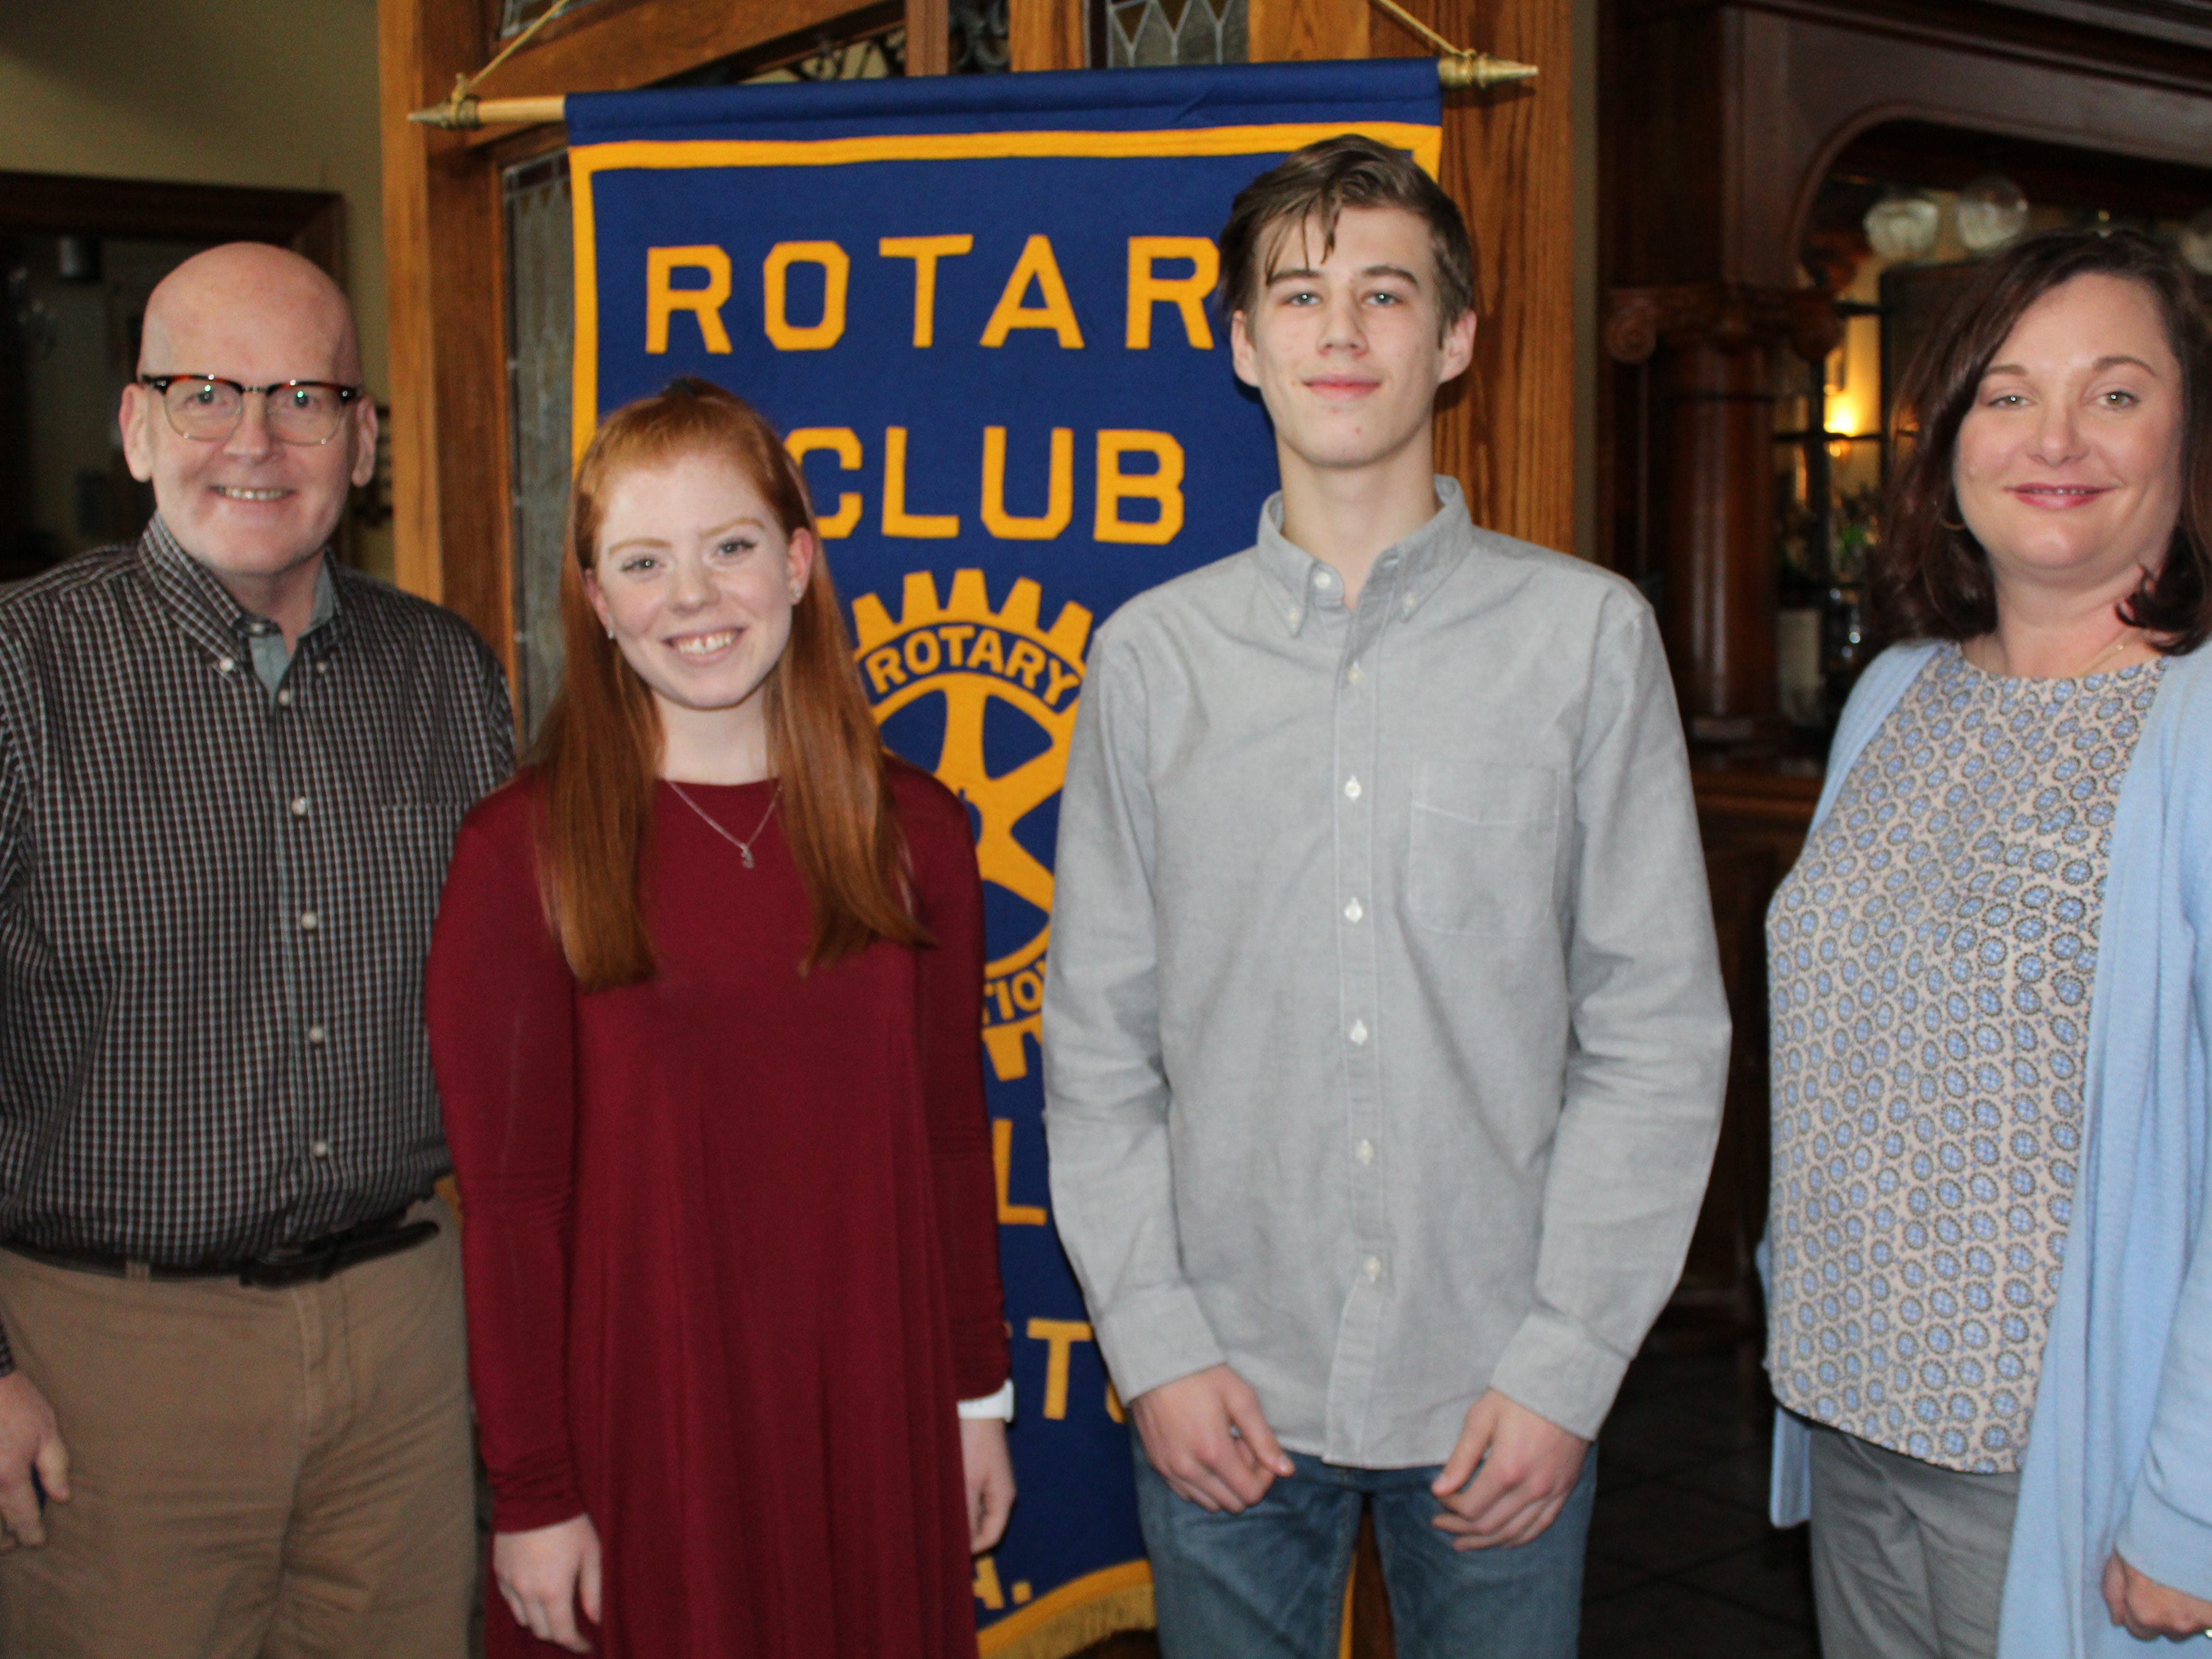 The Rotary Club of Red Lion - Dallastown recognized four students as February Students of the Month at their February 21st meeting. Club members George Flickinger, left, and Carrie Wilburn, right, pose with Red Lion students Dana Cutti and Alex Connors. submitted